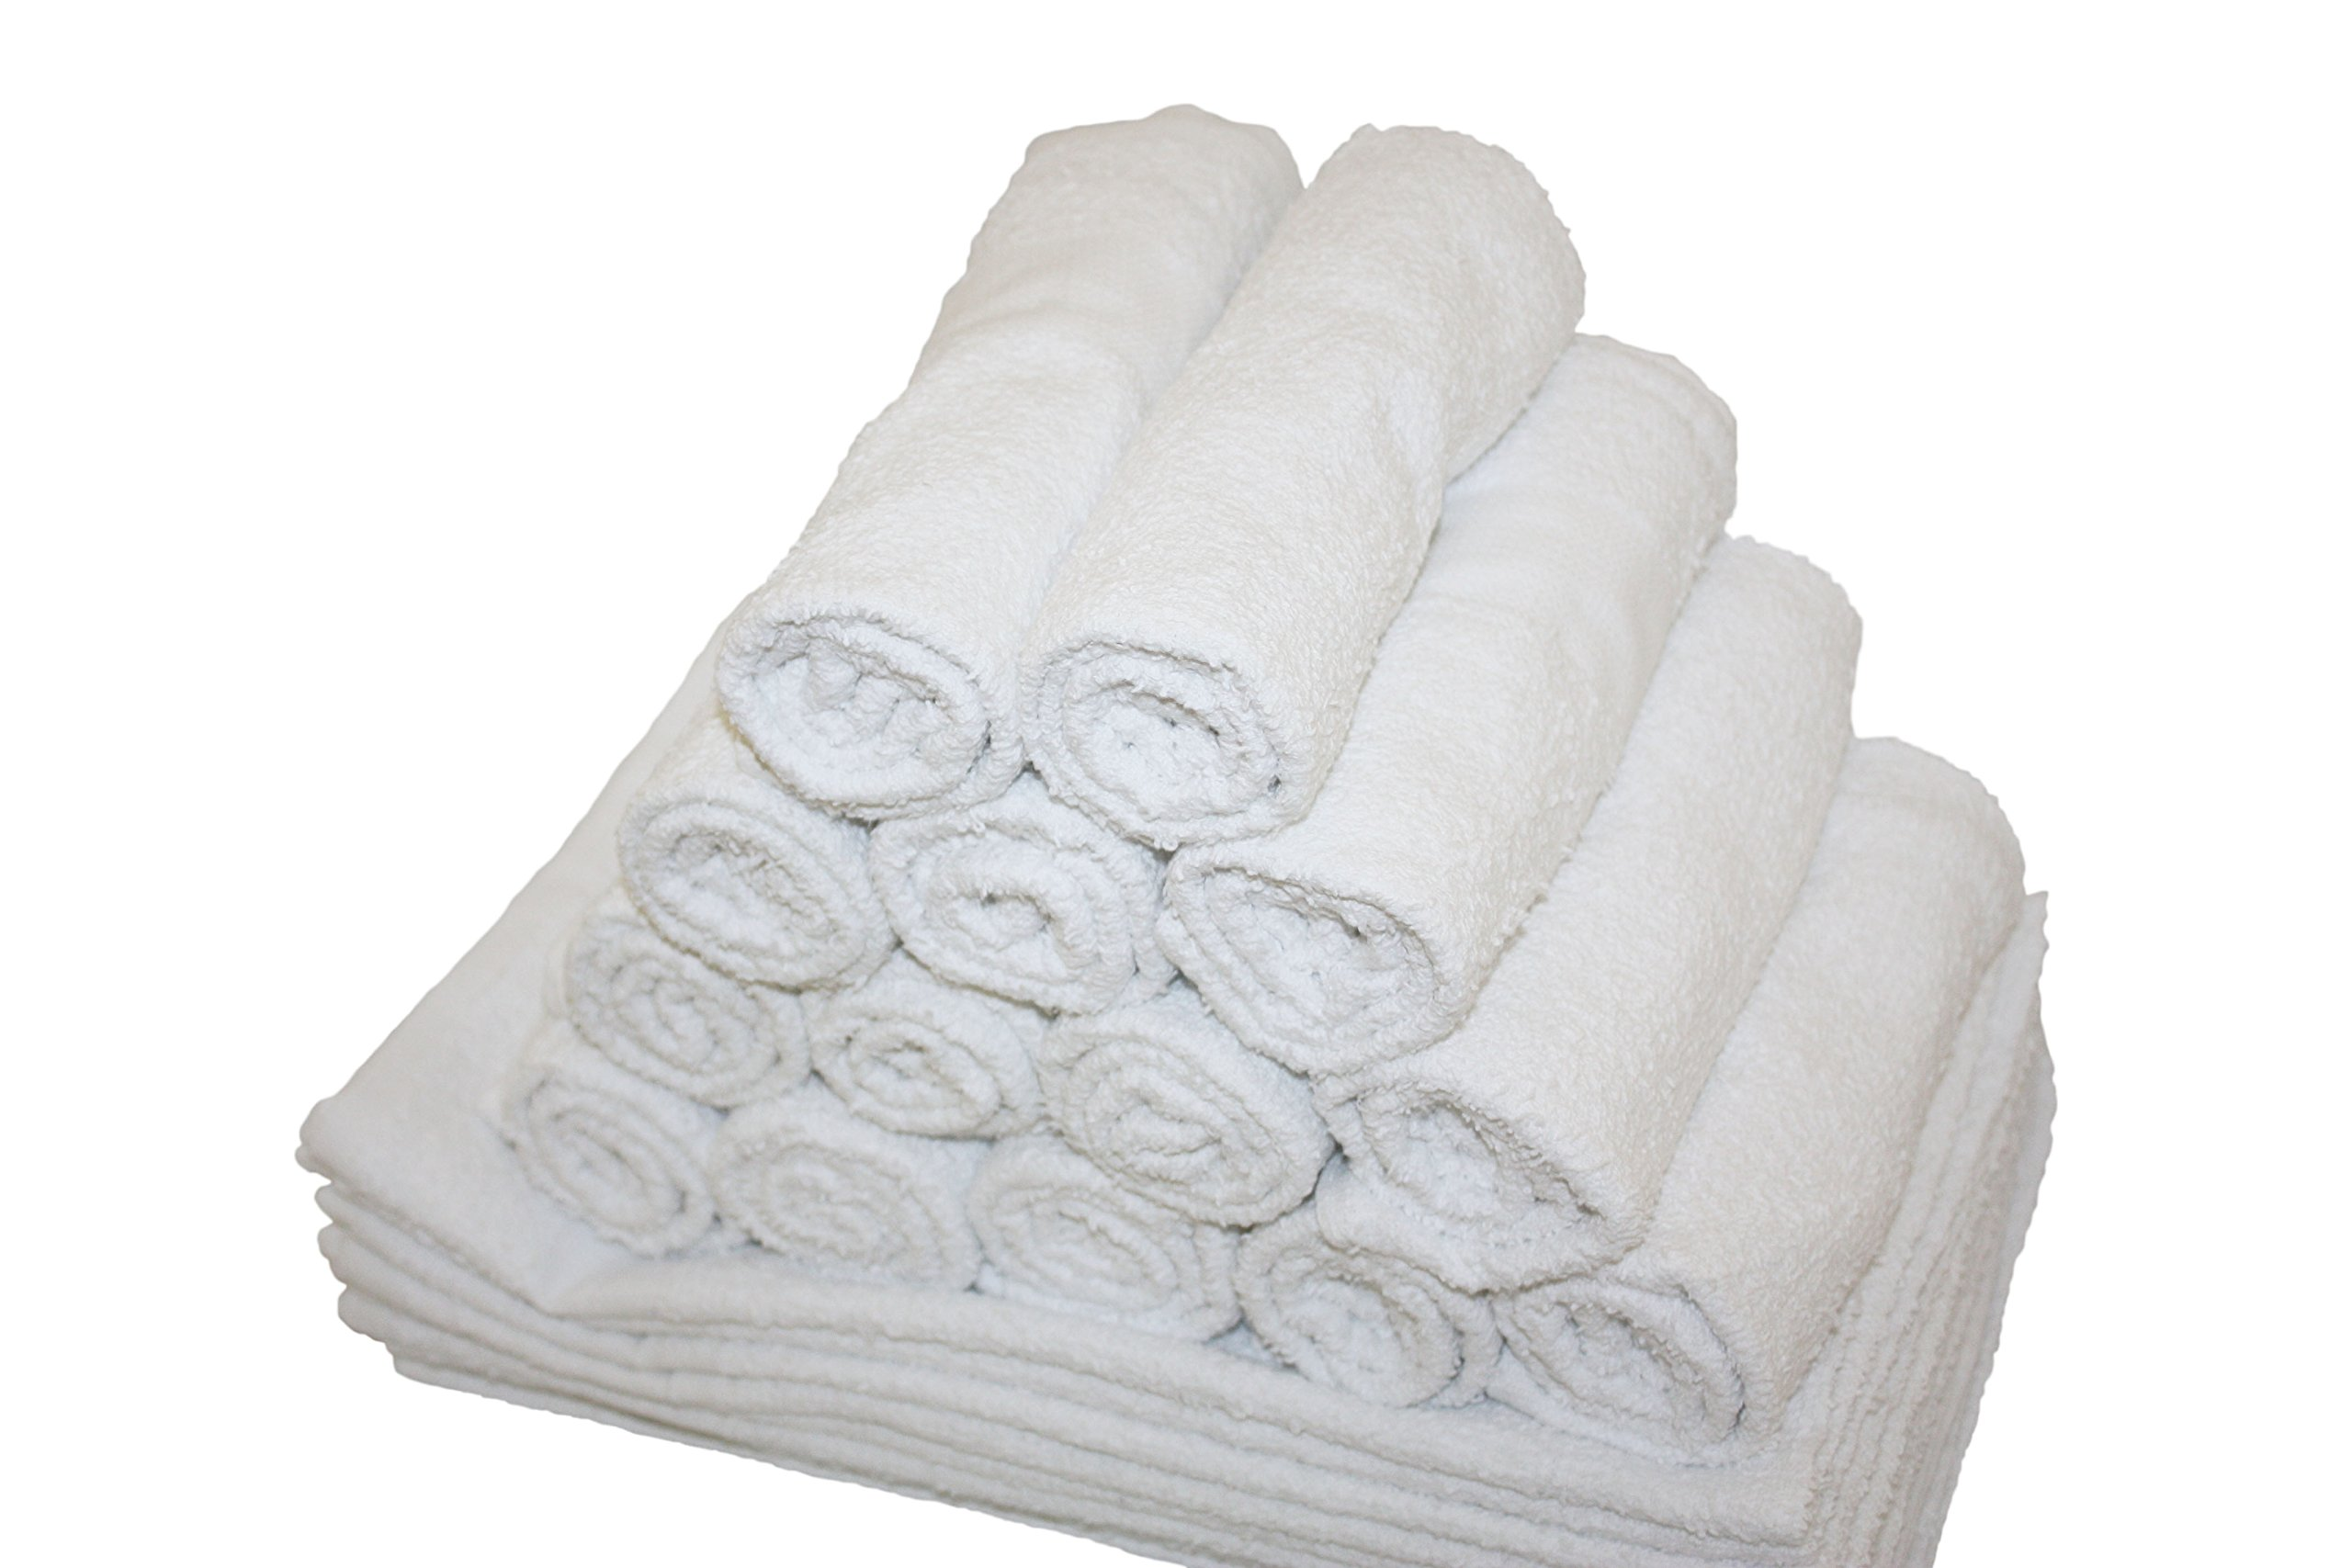 Atlas Economy Hand Towels 16x27 Inch (48 Bulk Pack) Solid White 100% Cotton - Salon, Gym, Spa, Massage, Spas, Motels, Restaurants, Cleaning, Auto & Home - Eco-Friendly